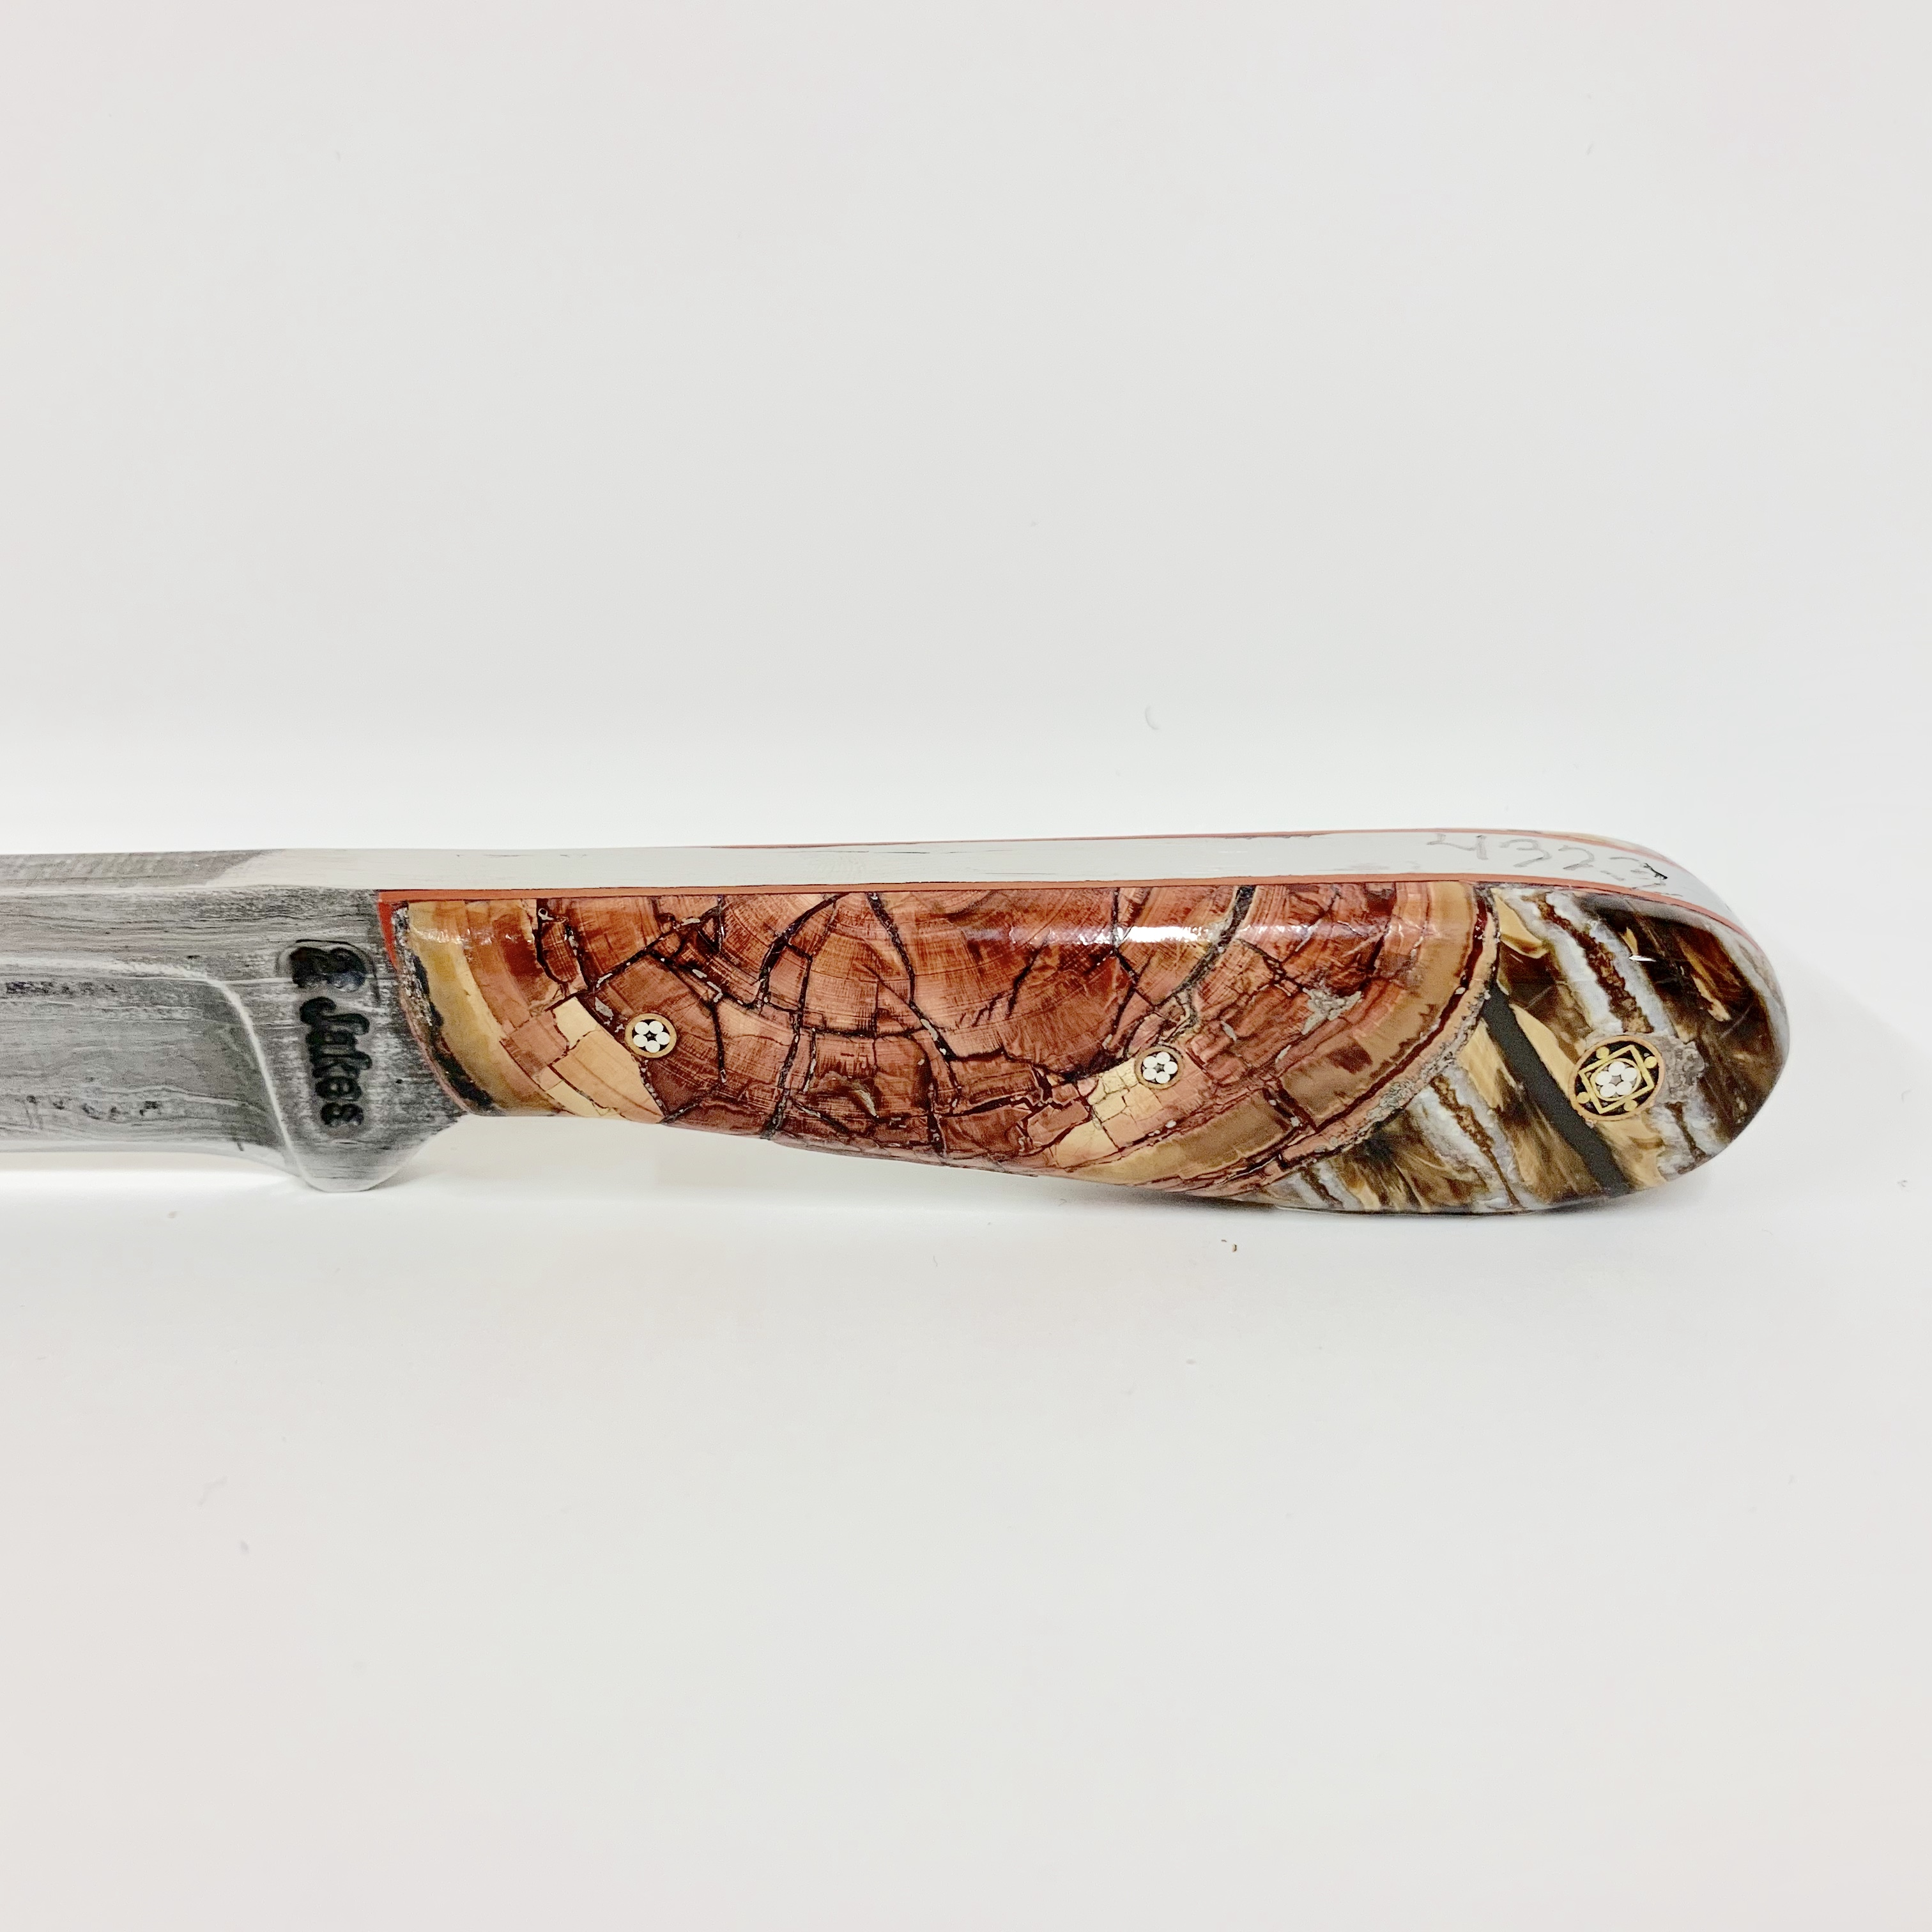 RED MAMMOTH IVORY AND MAMMOTH TOOTH KNIFE